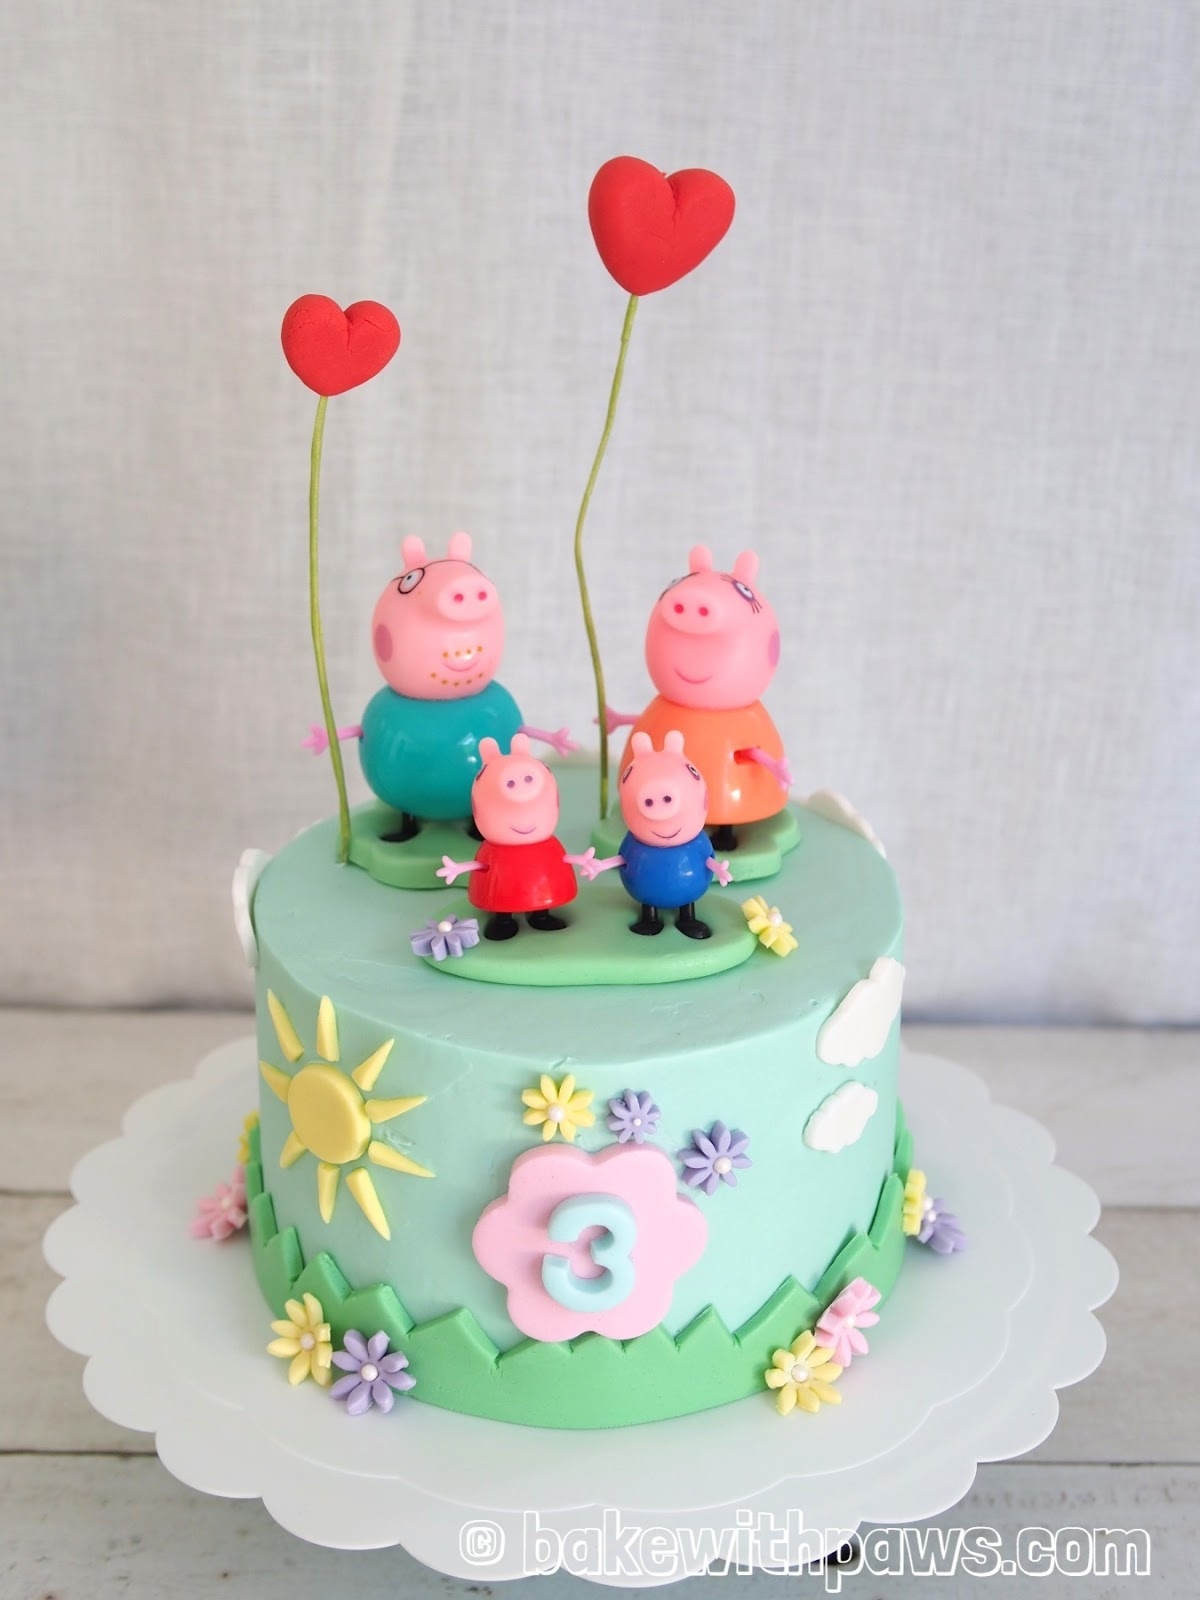 Peppa Pig Theme Cake Specially For My Good Friends 3 Years Old Princess Birthday It Is Two Layers Of 7 Inch Banana Chocolate Icing With Swiss